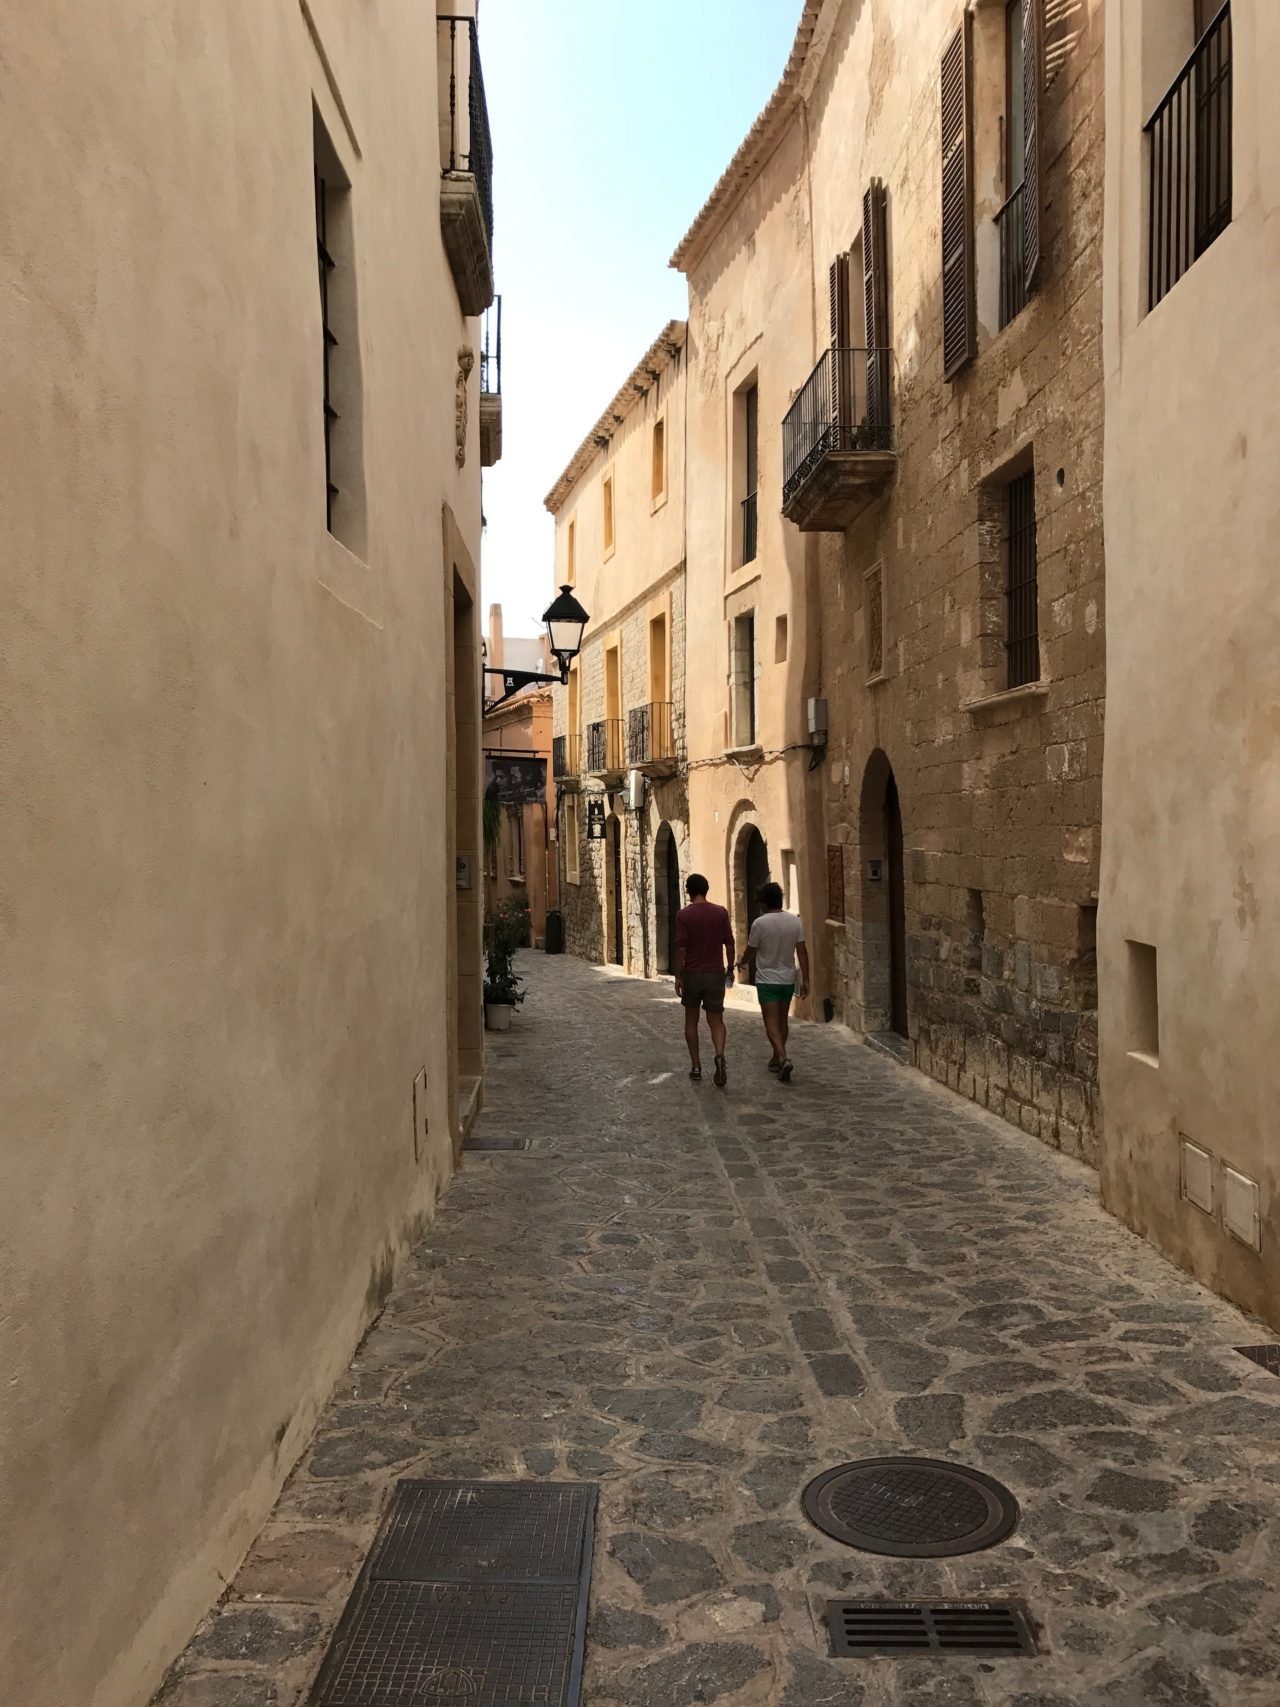 Narrow Street With Doors And Windows And People Walking On Cobblestone